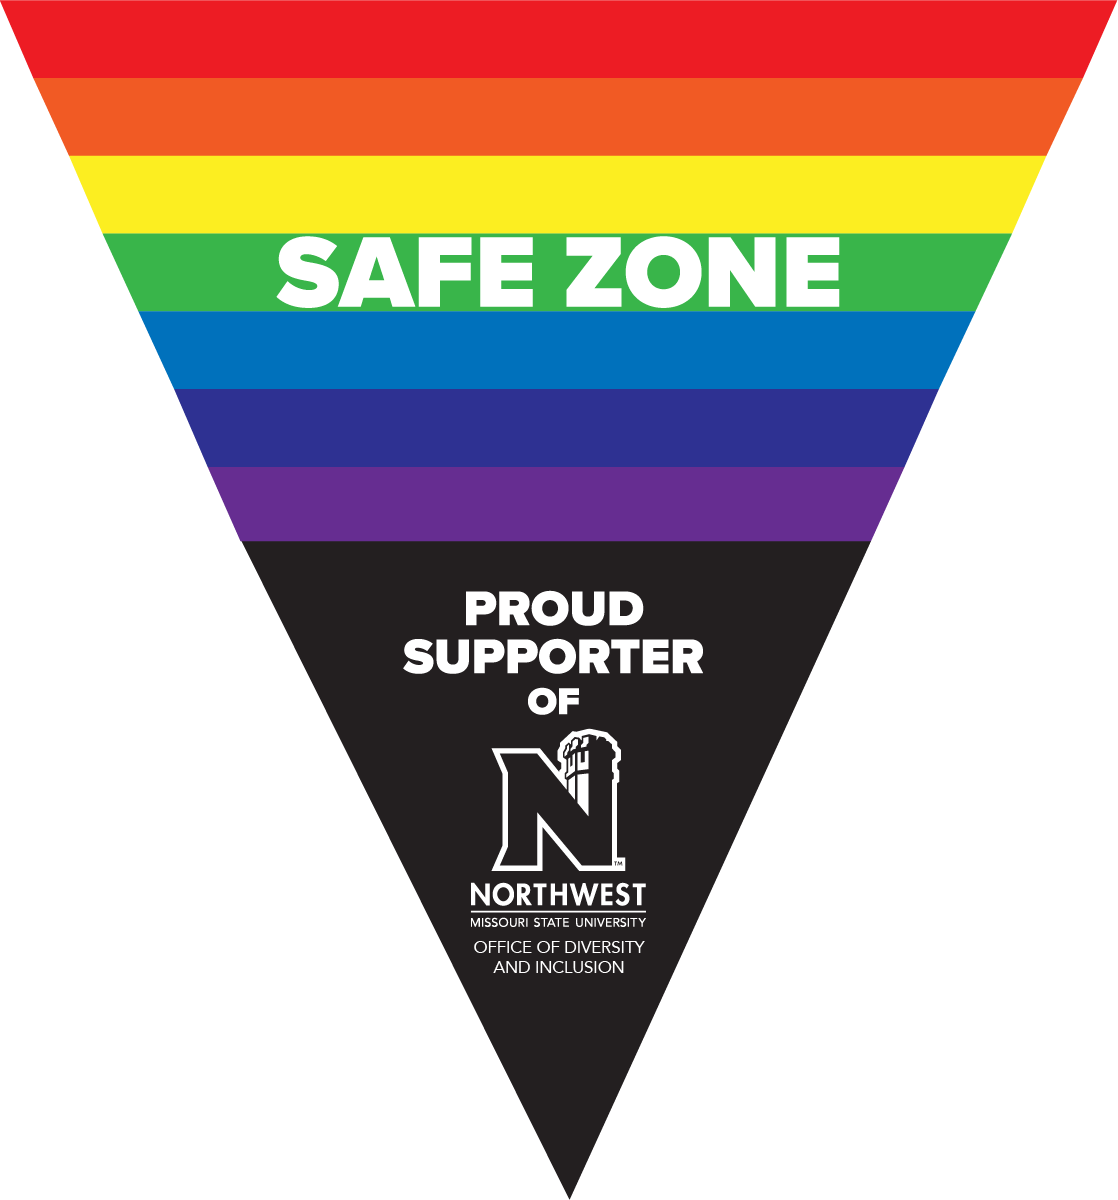 [Safe Zone decal]